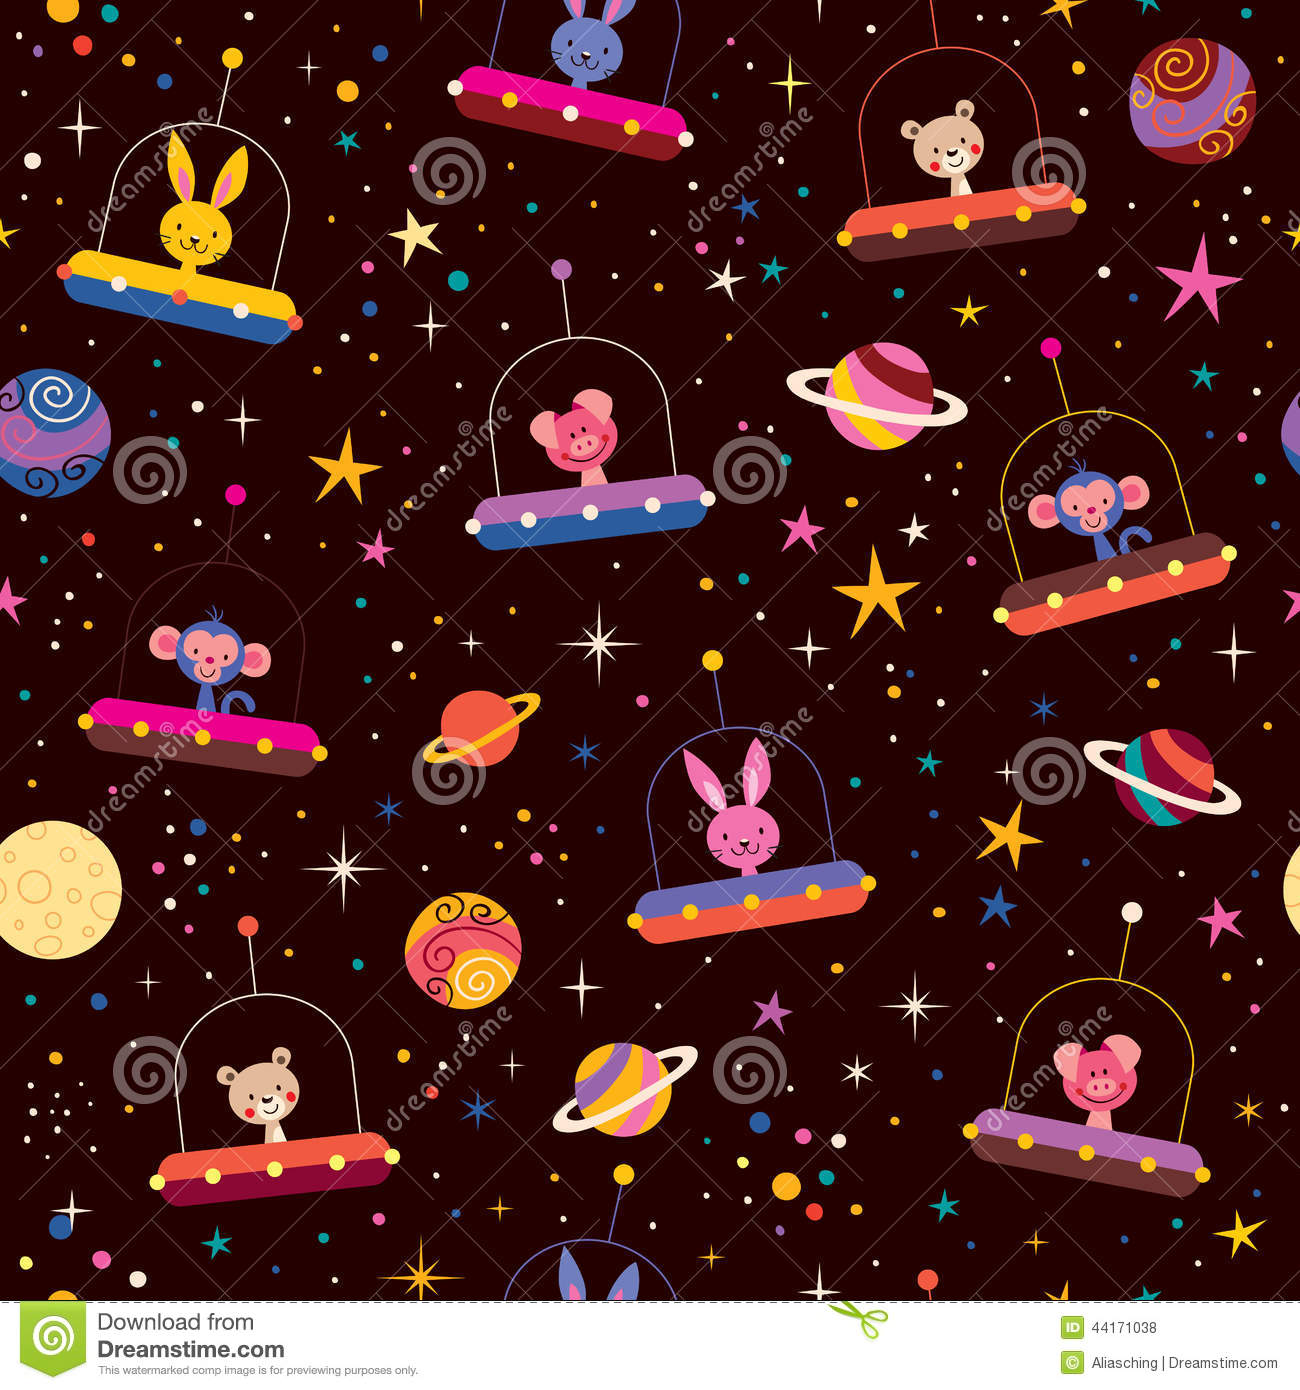 Cute Animals In Space Kids Pattern Stock Vector - Image: 44171038